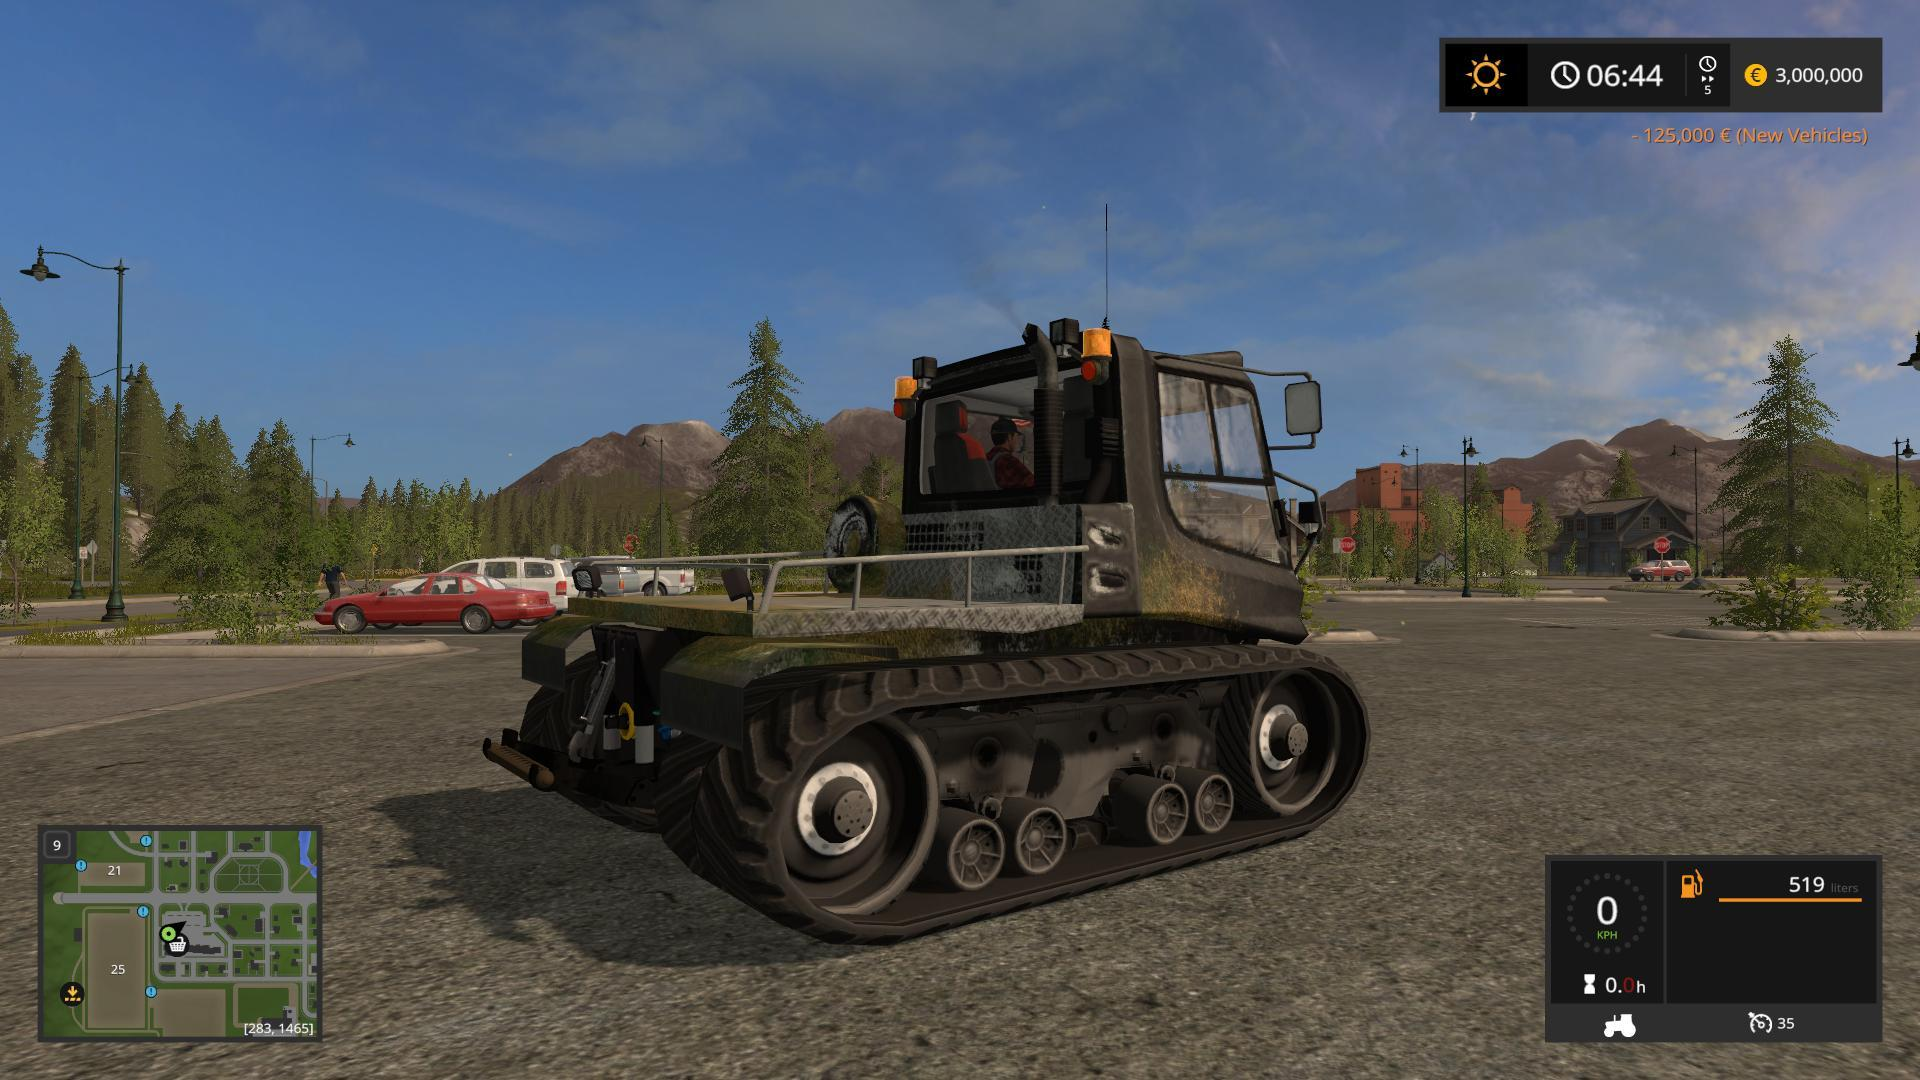 helicopter gmae with Pistenbully 100 V1 For Fs 2017 on yellowscan likewise Resident Evil 6 Review moreover Sky Travel In Dark Fantasy World besides Real Life S T A L K E R Locations further Ship Wreck Interior.